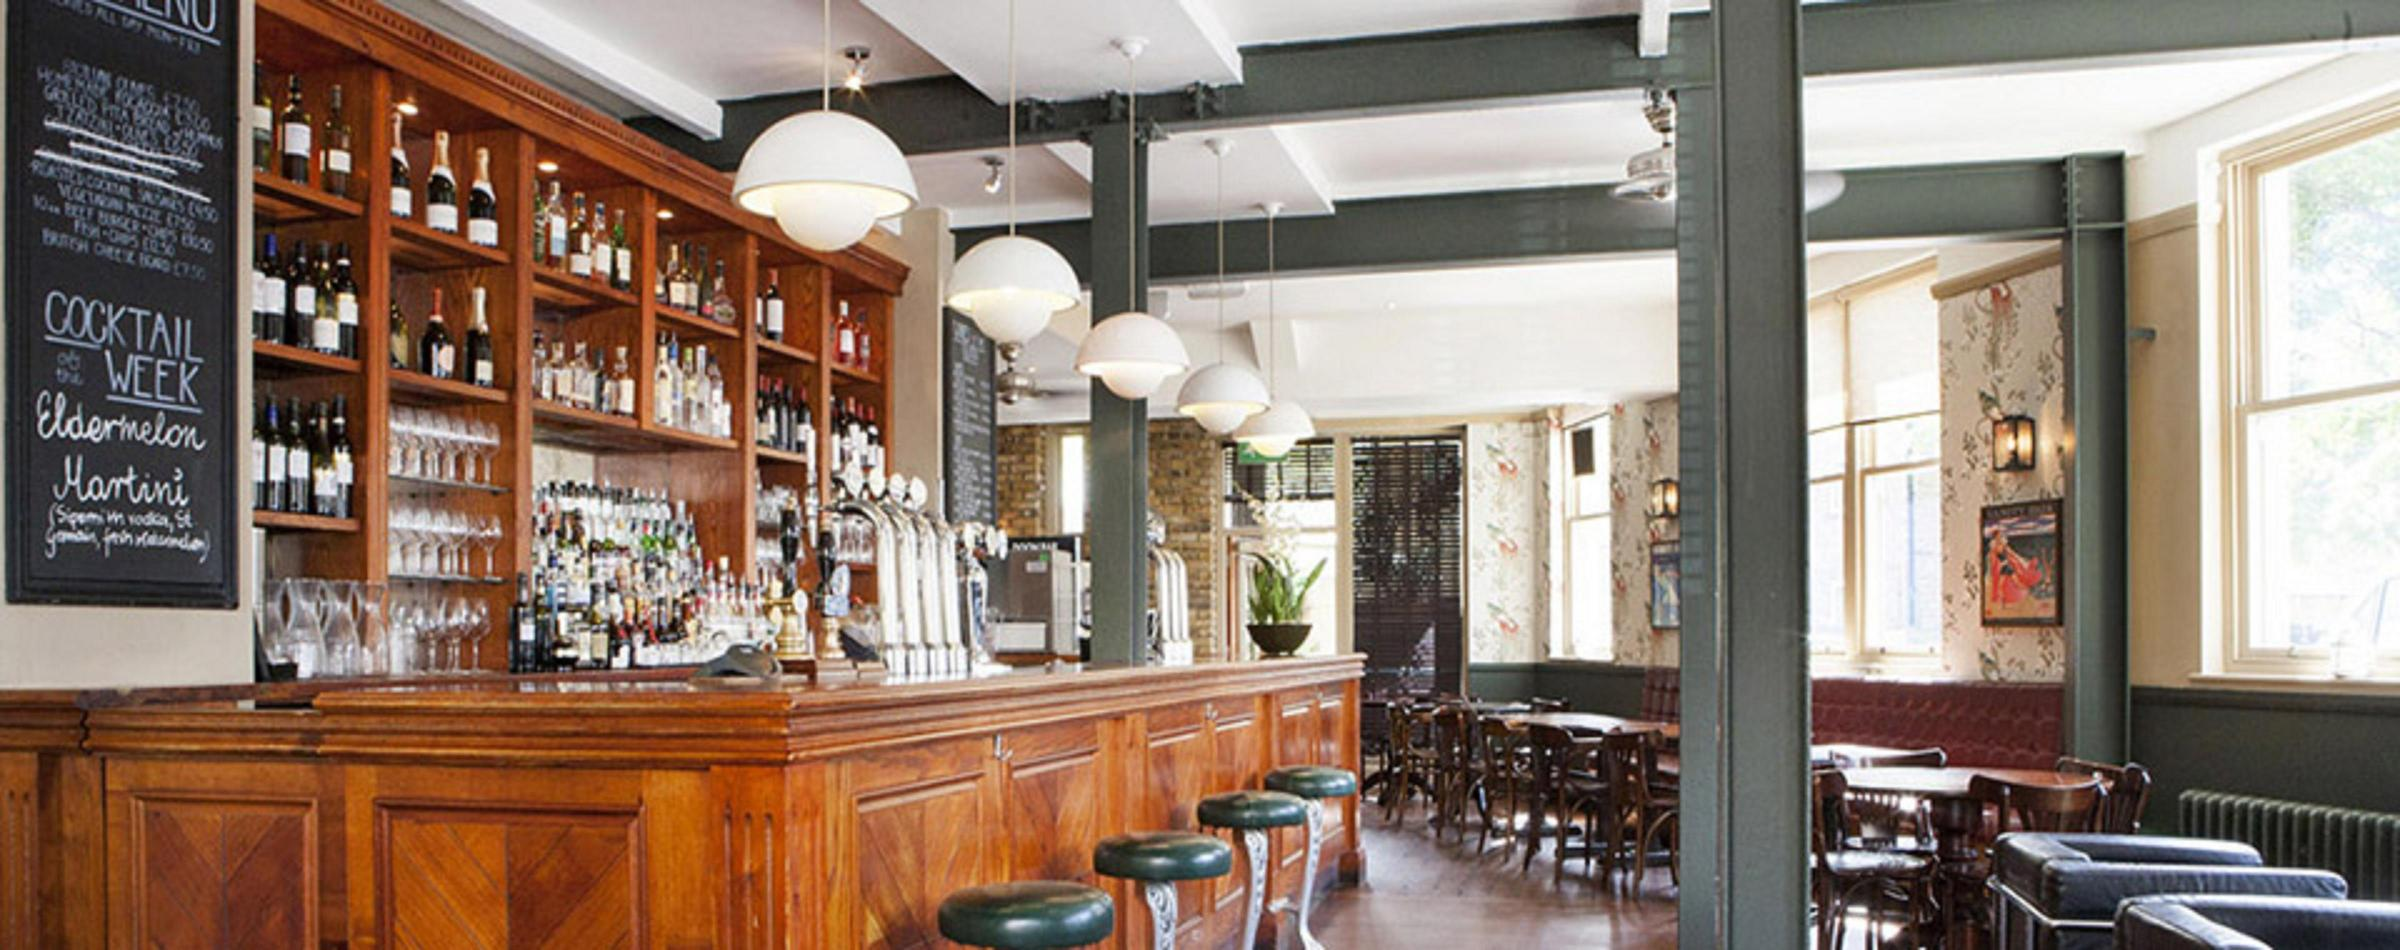 The Stonhouse, Clapham